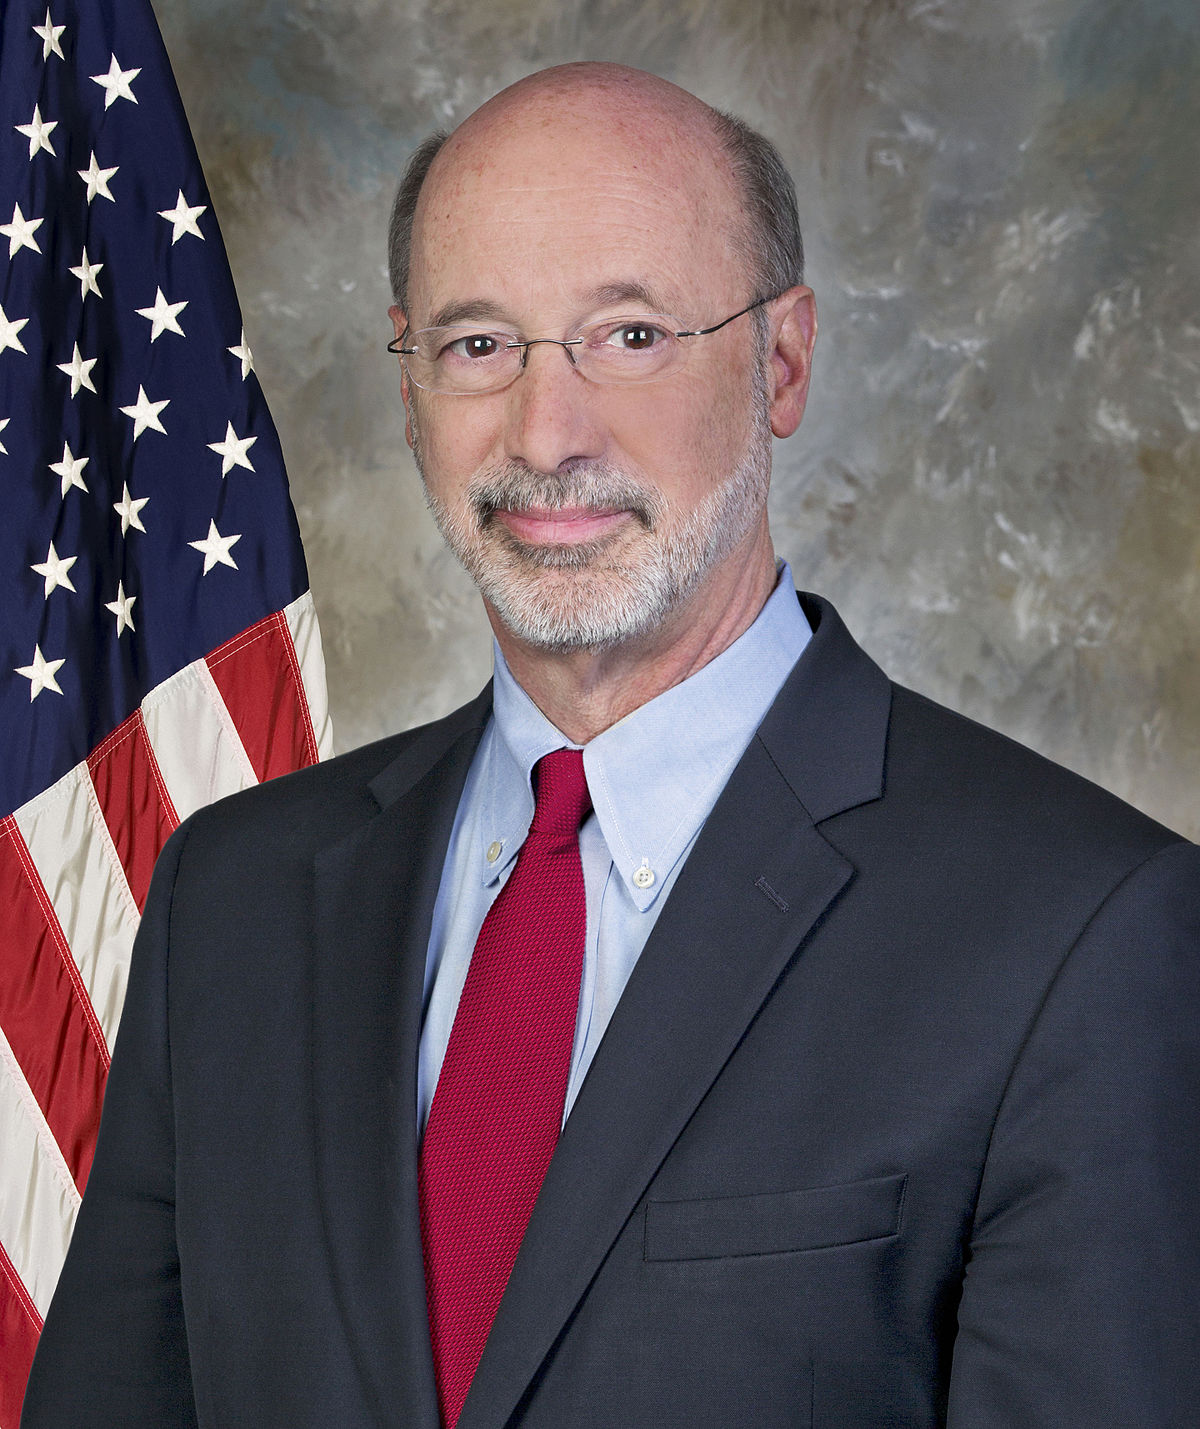 Governor Tom Wolf Official Portrait Wikipedia